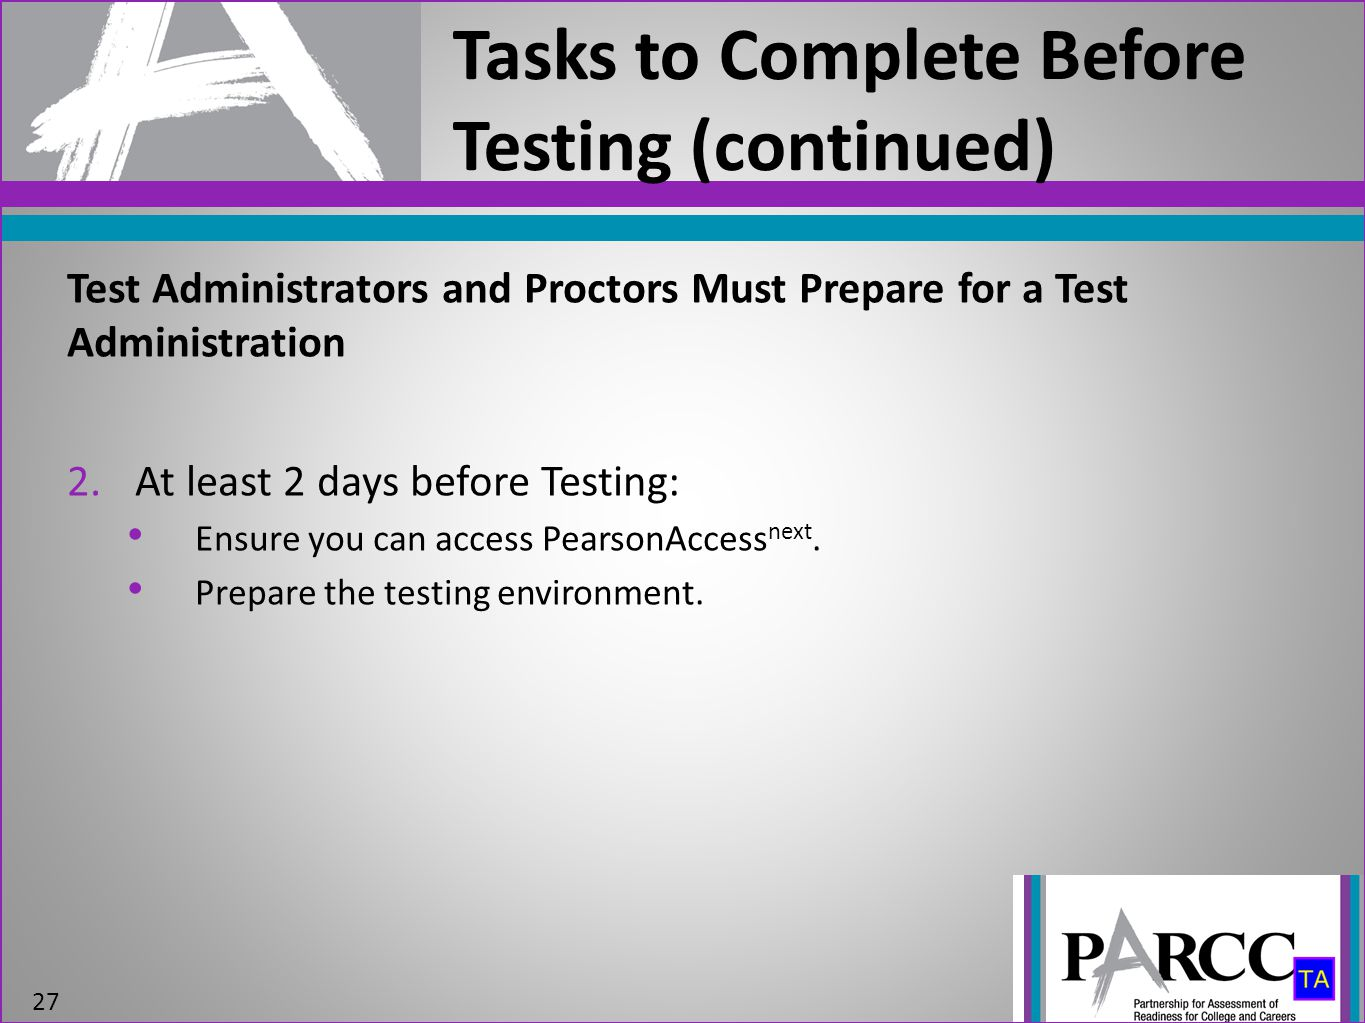 2.At least 2 days before Testing: Ensure you can access PearsonAccess next.